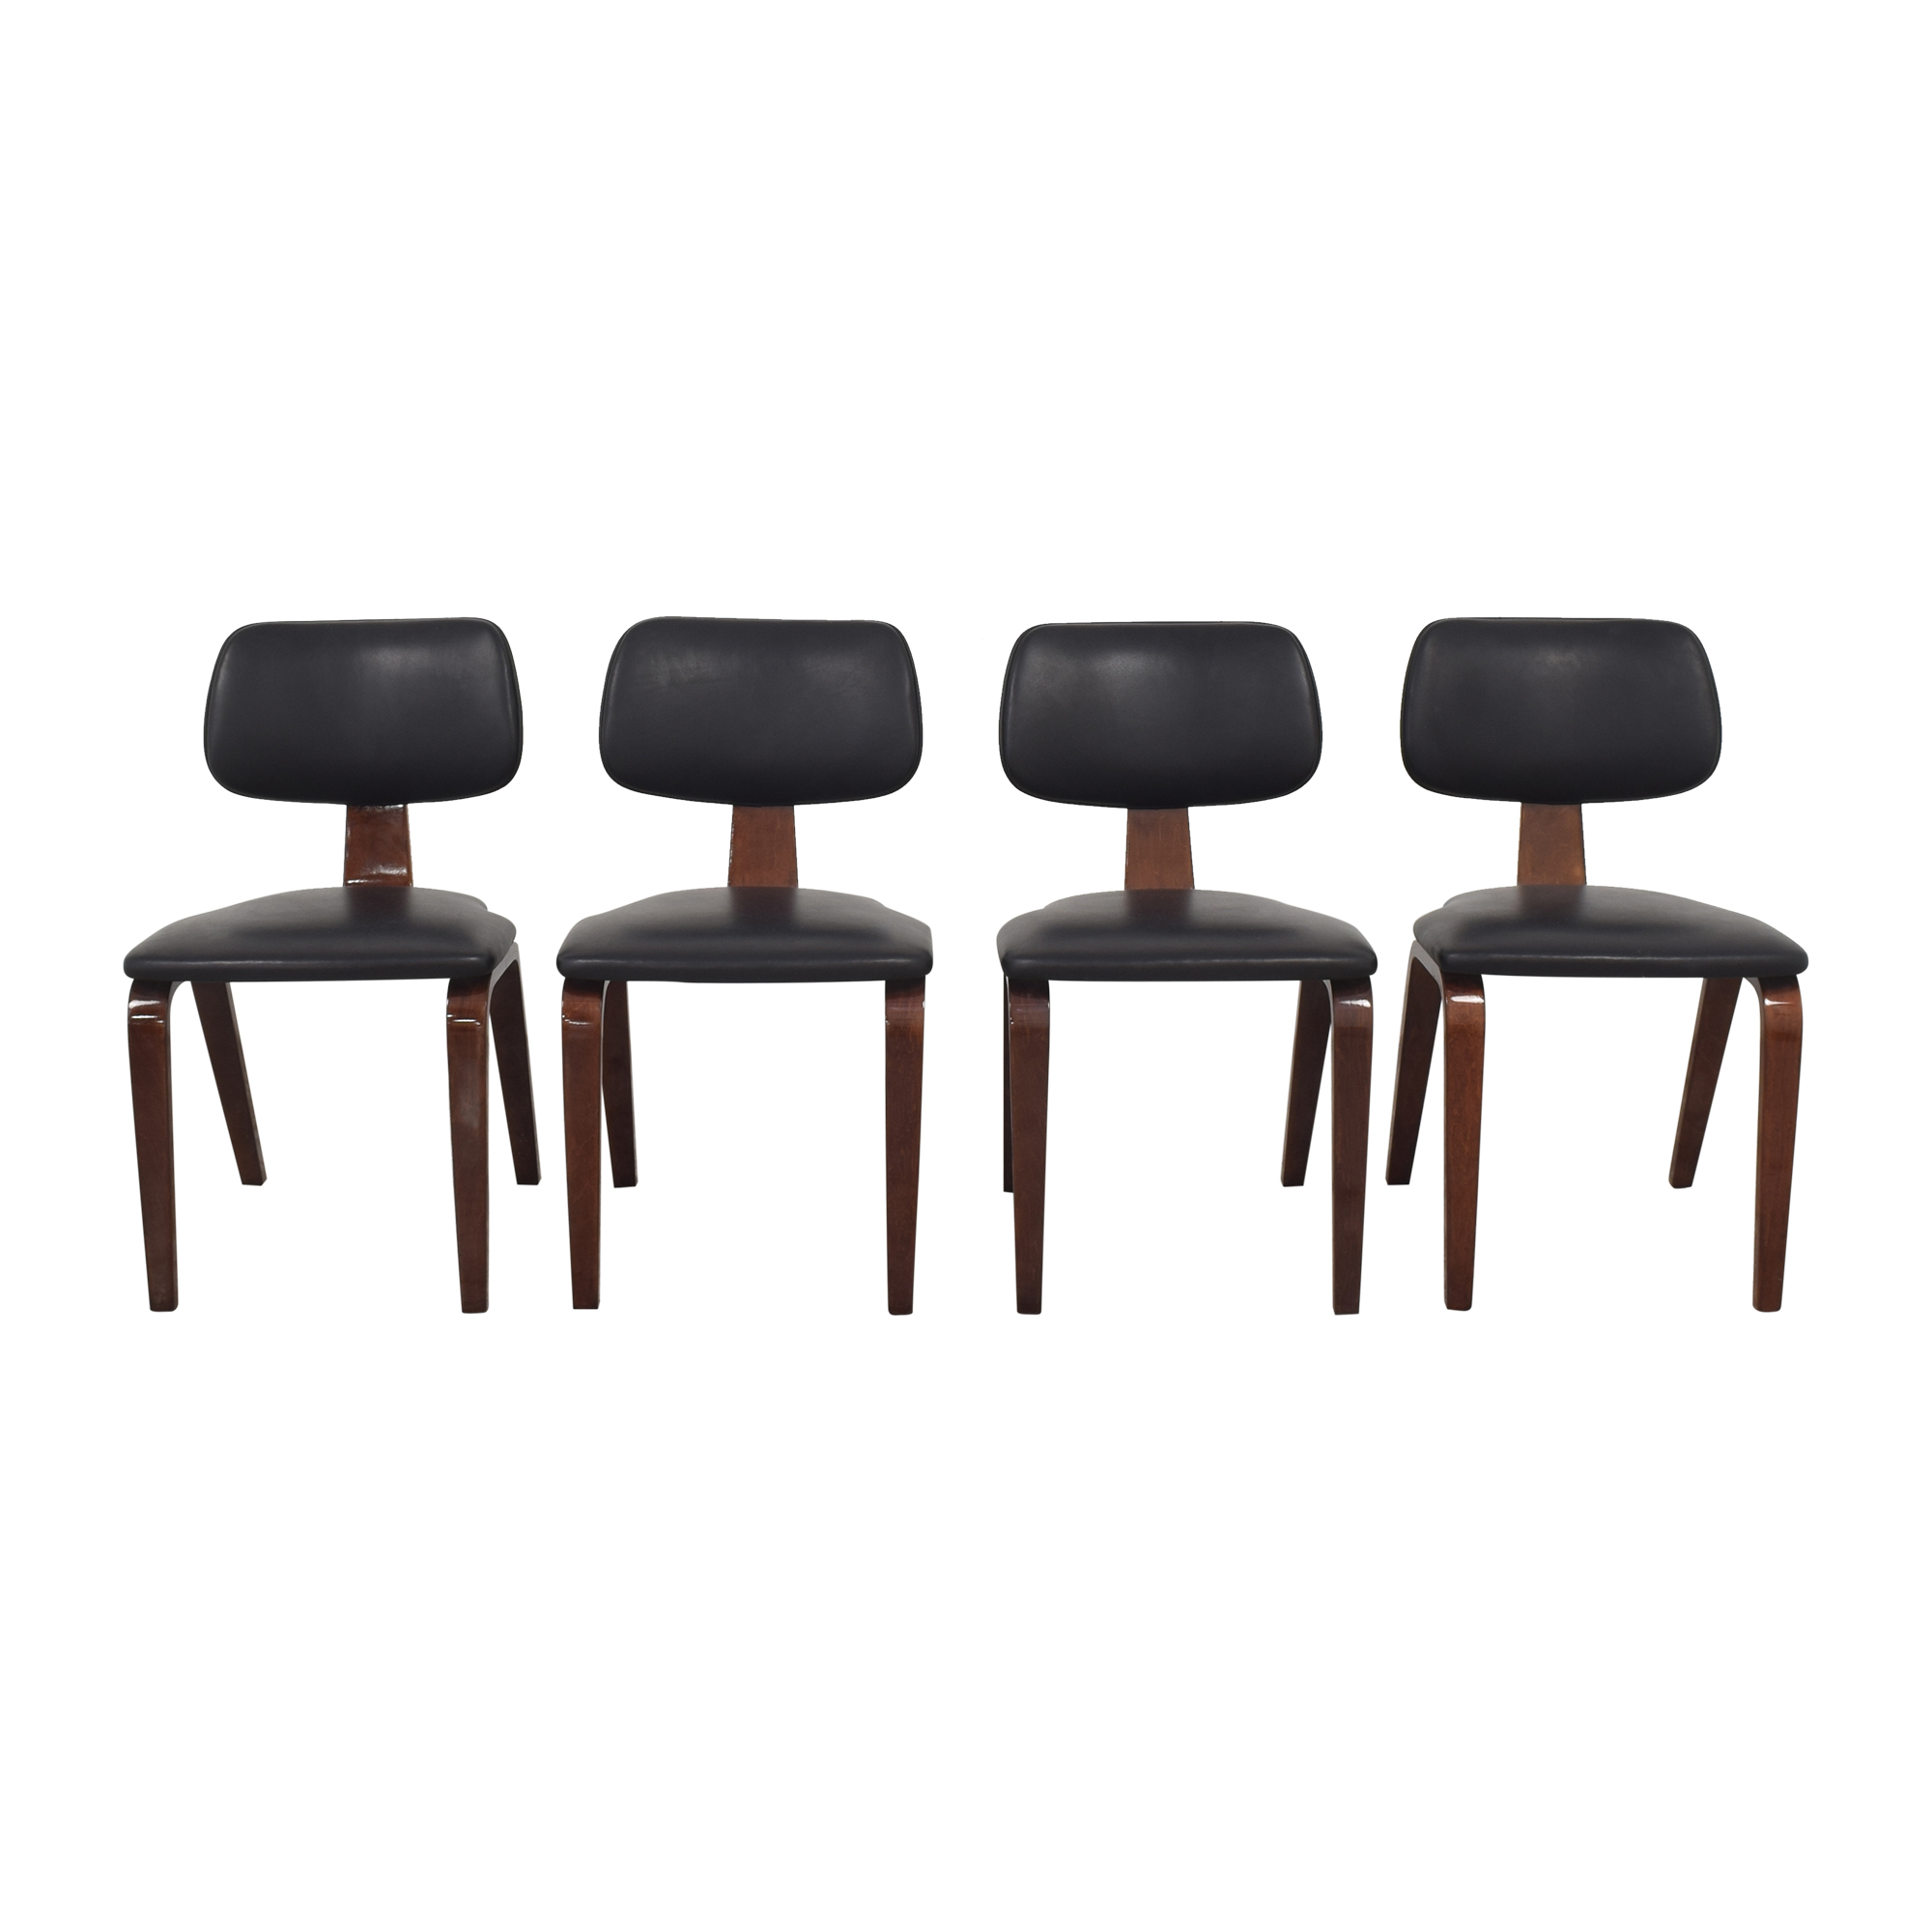 Mid-Century Modern Style Dining Chairs sale